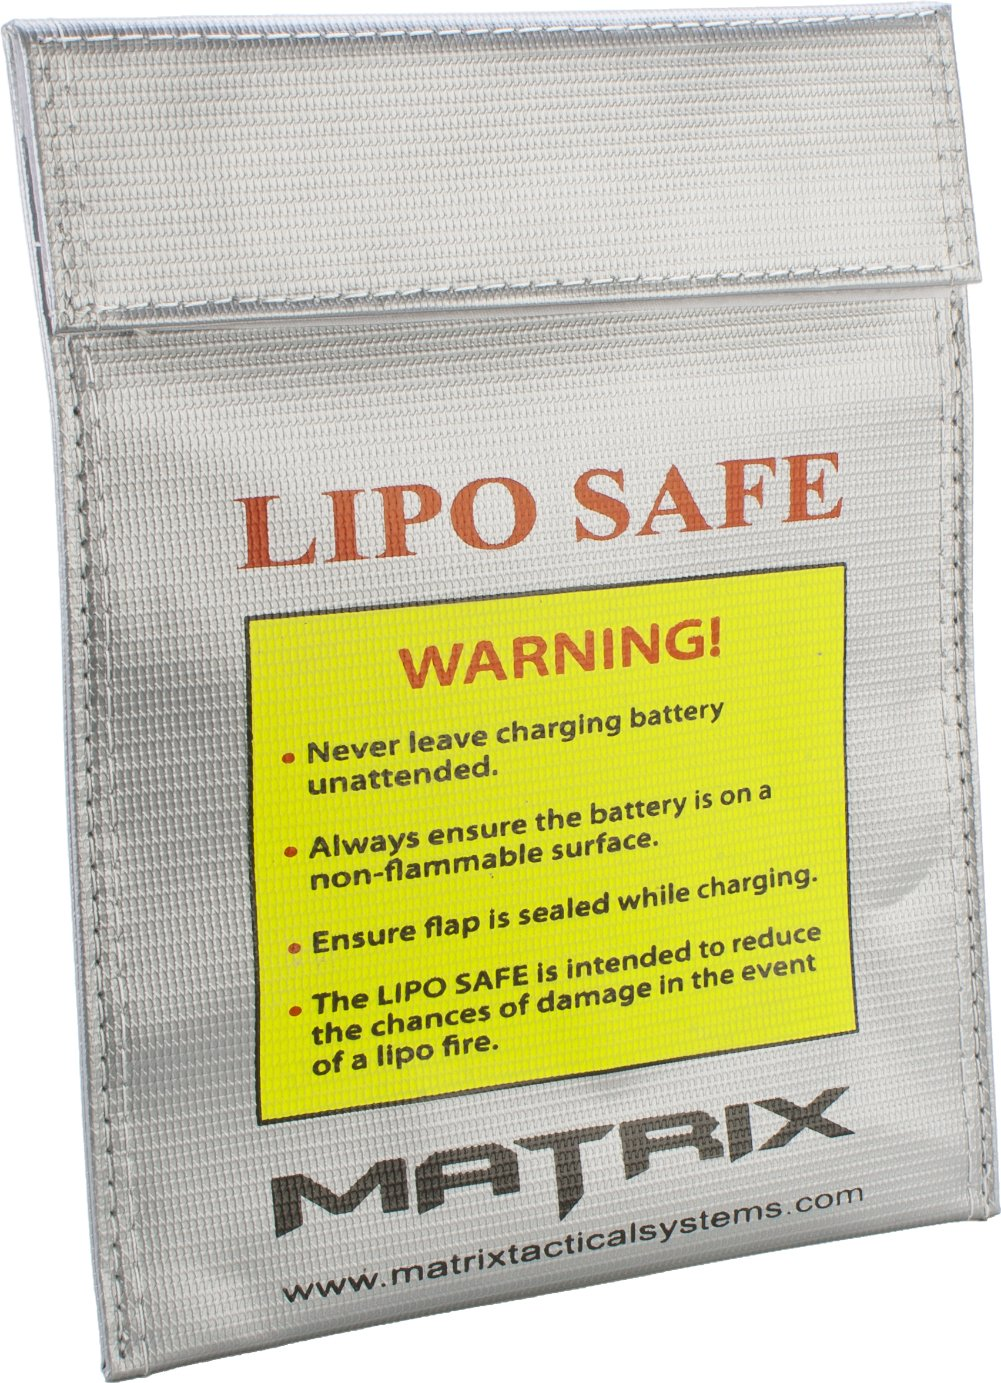 Evike Matrix LIPO SAFE LiPo (Lithium Polymer) Battery Charging Container Bag - 9'' x 7'' (230mm x 180mm)